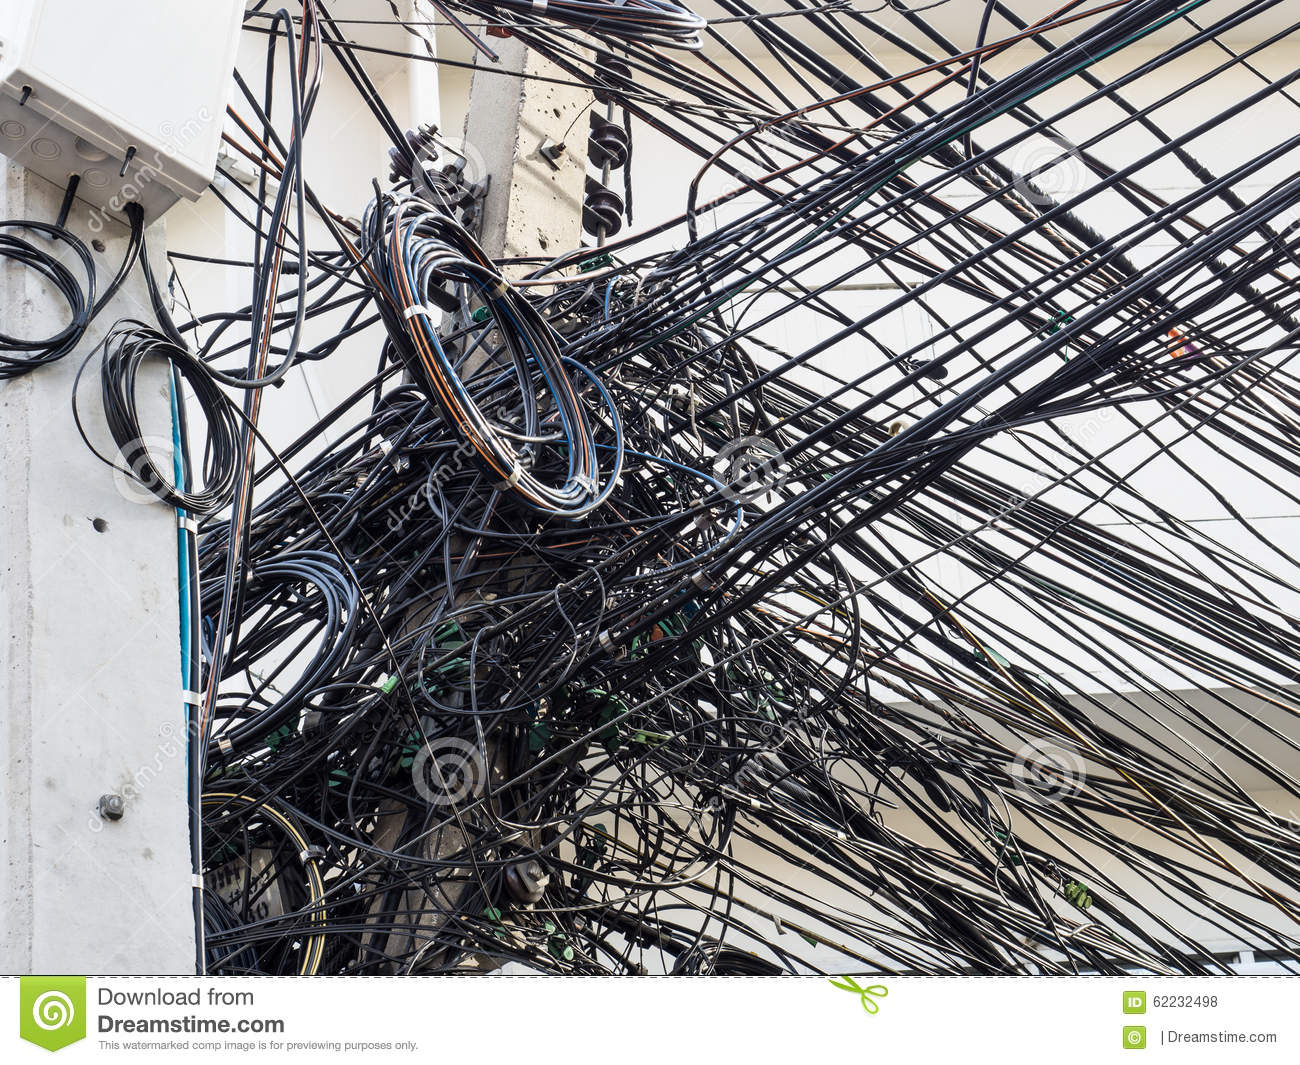 Messy Wire On Electricity Post Stock Photo - Image: 62232498